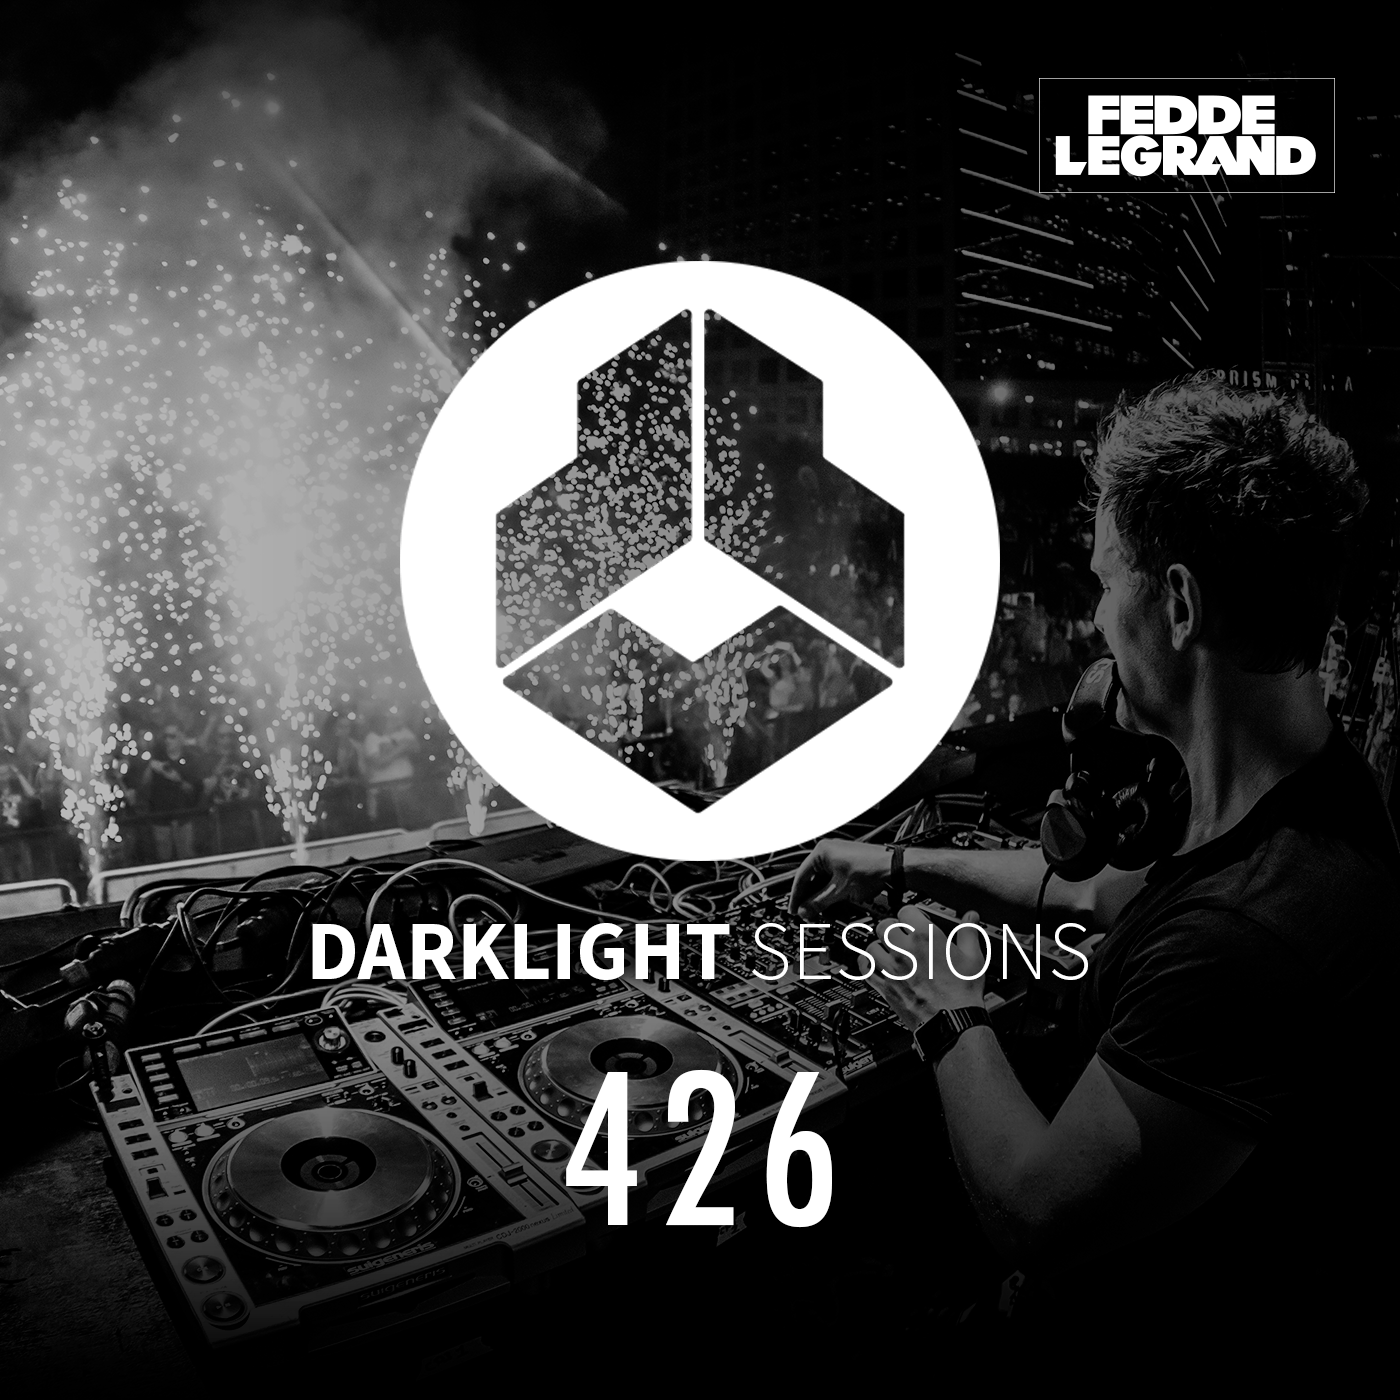 Darklight Sessions 426